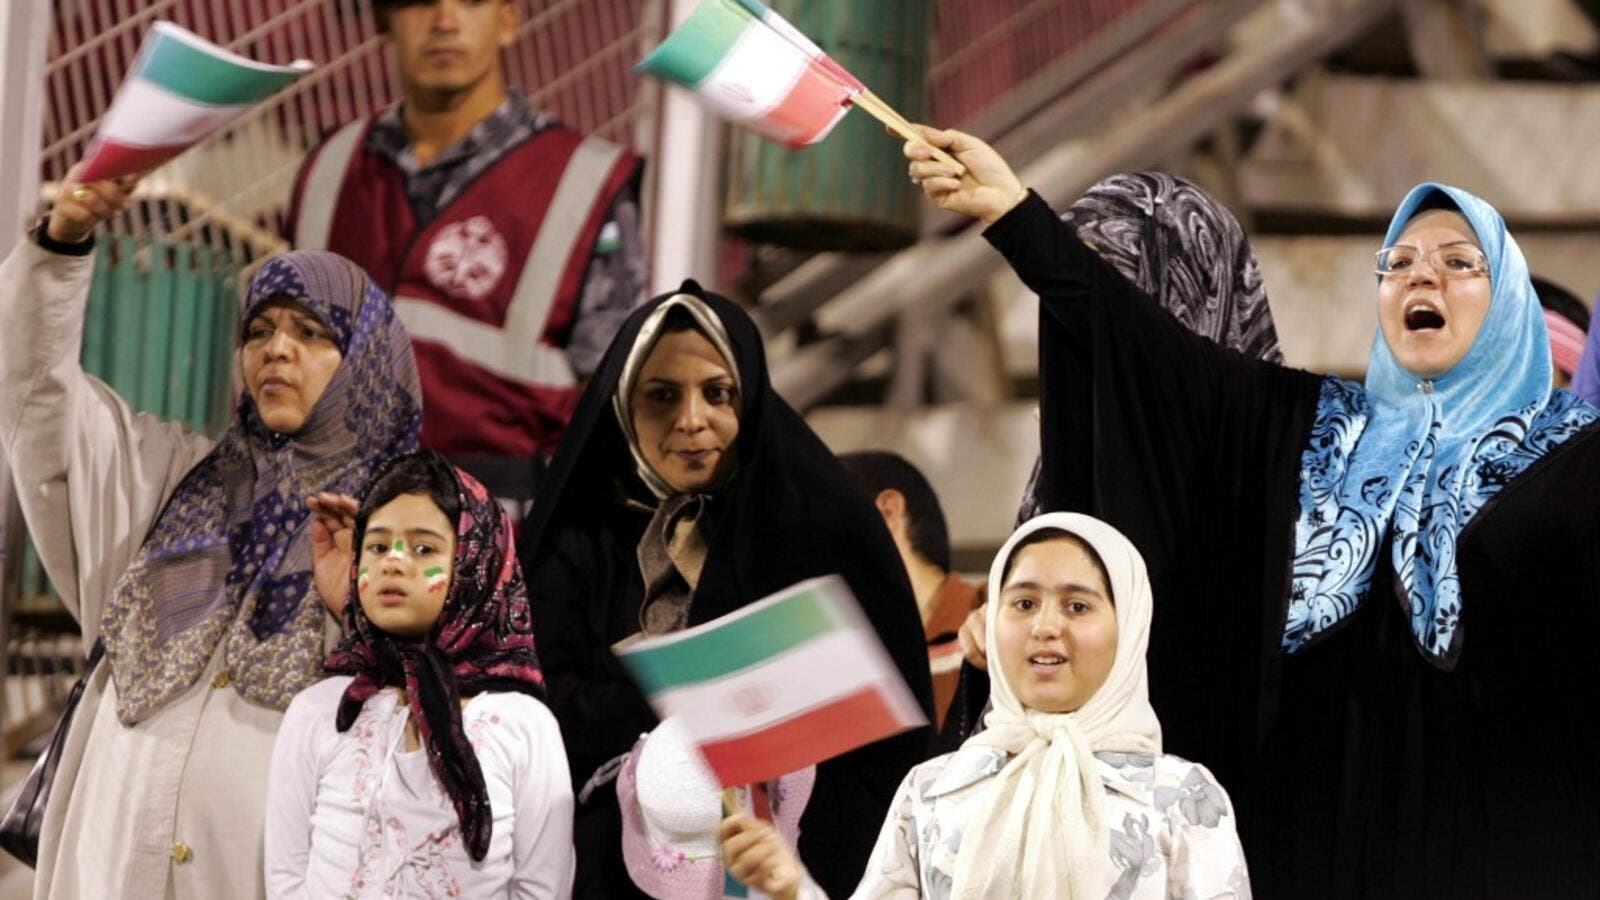 World football's governing body FIFA ordered Iran last month to allow women access to stadiums without restriction